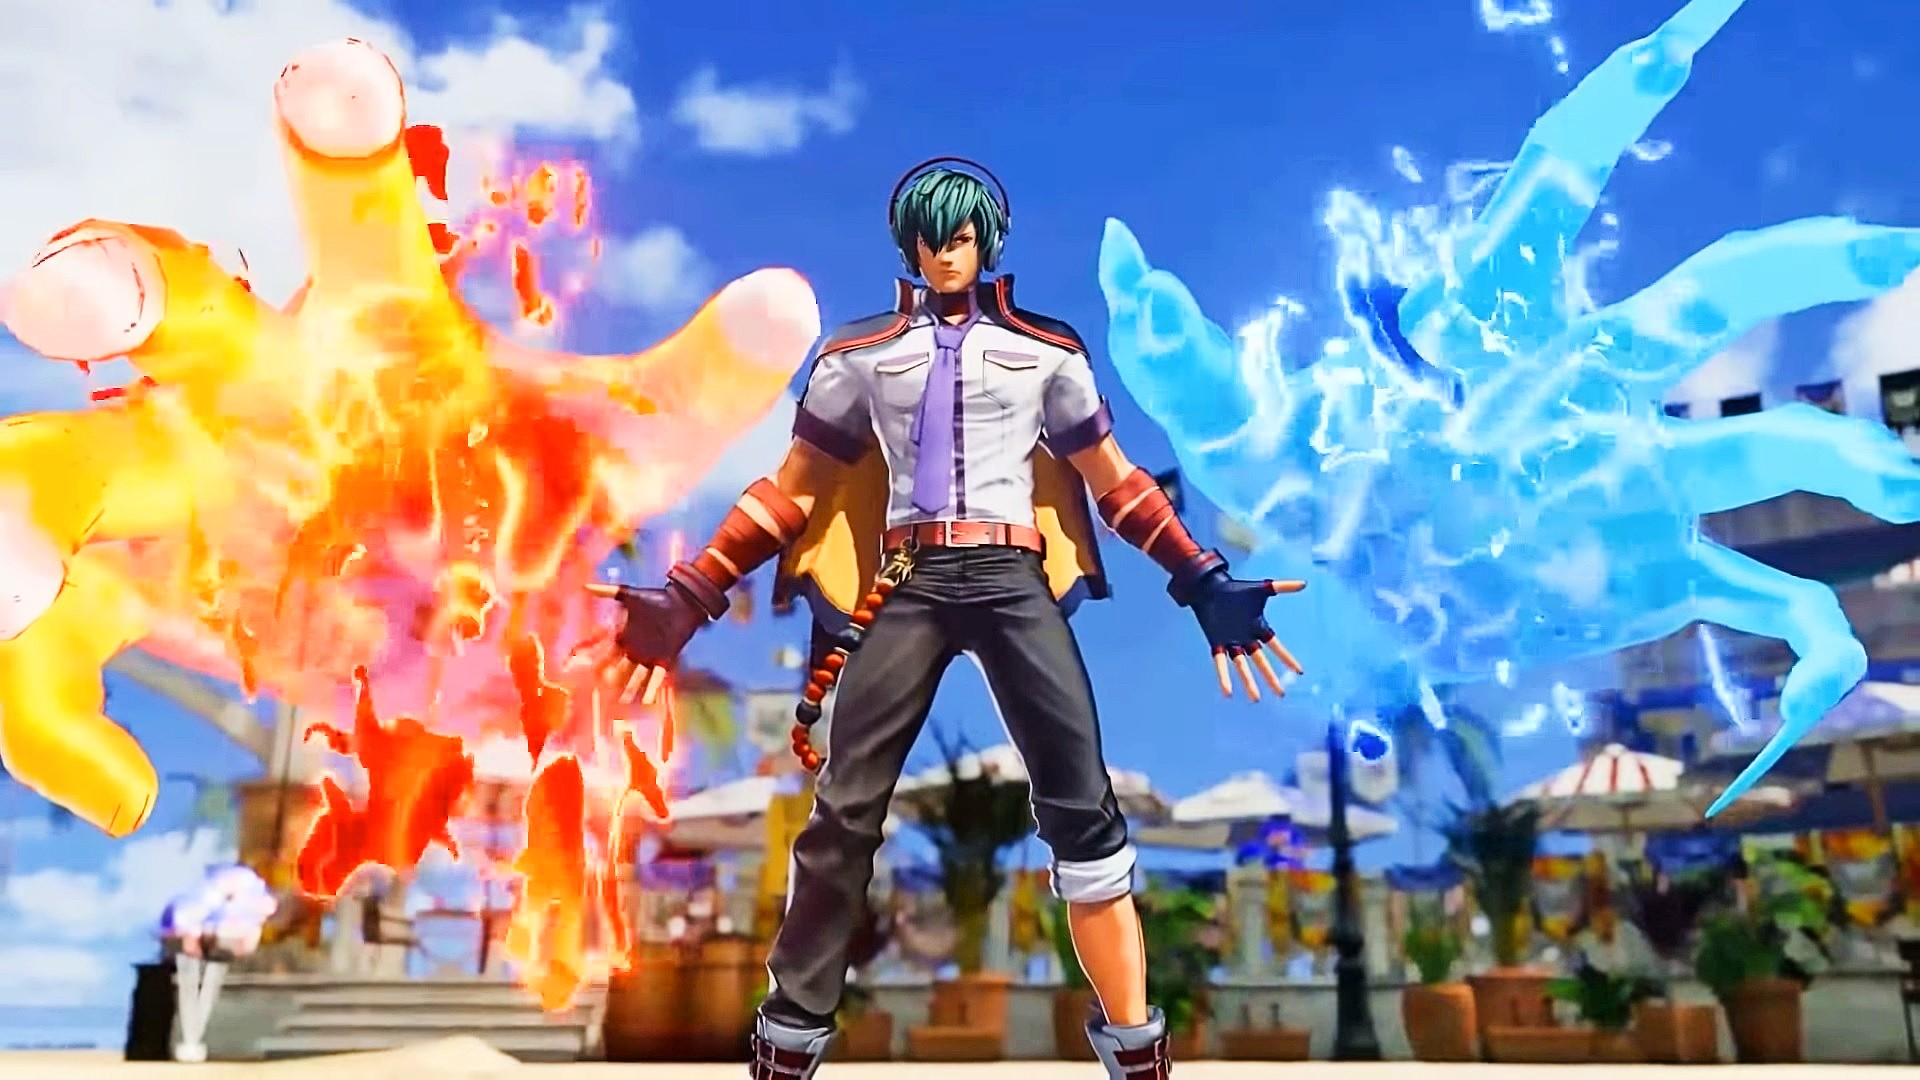 King of Fighters XV delayed into next year